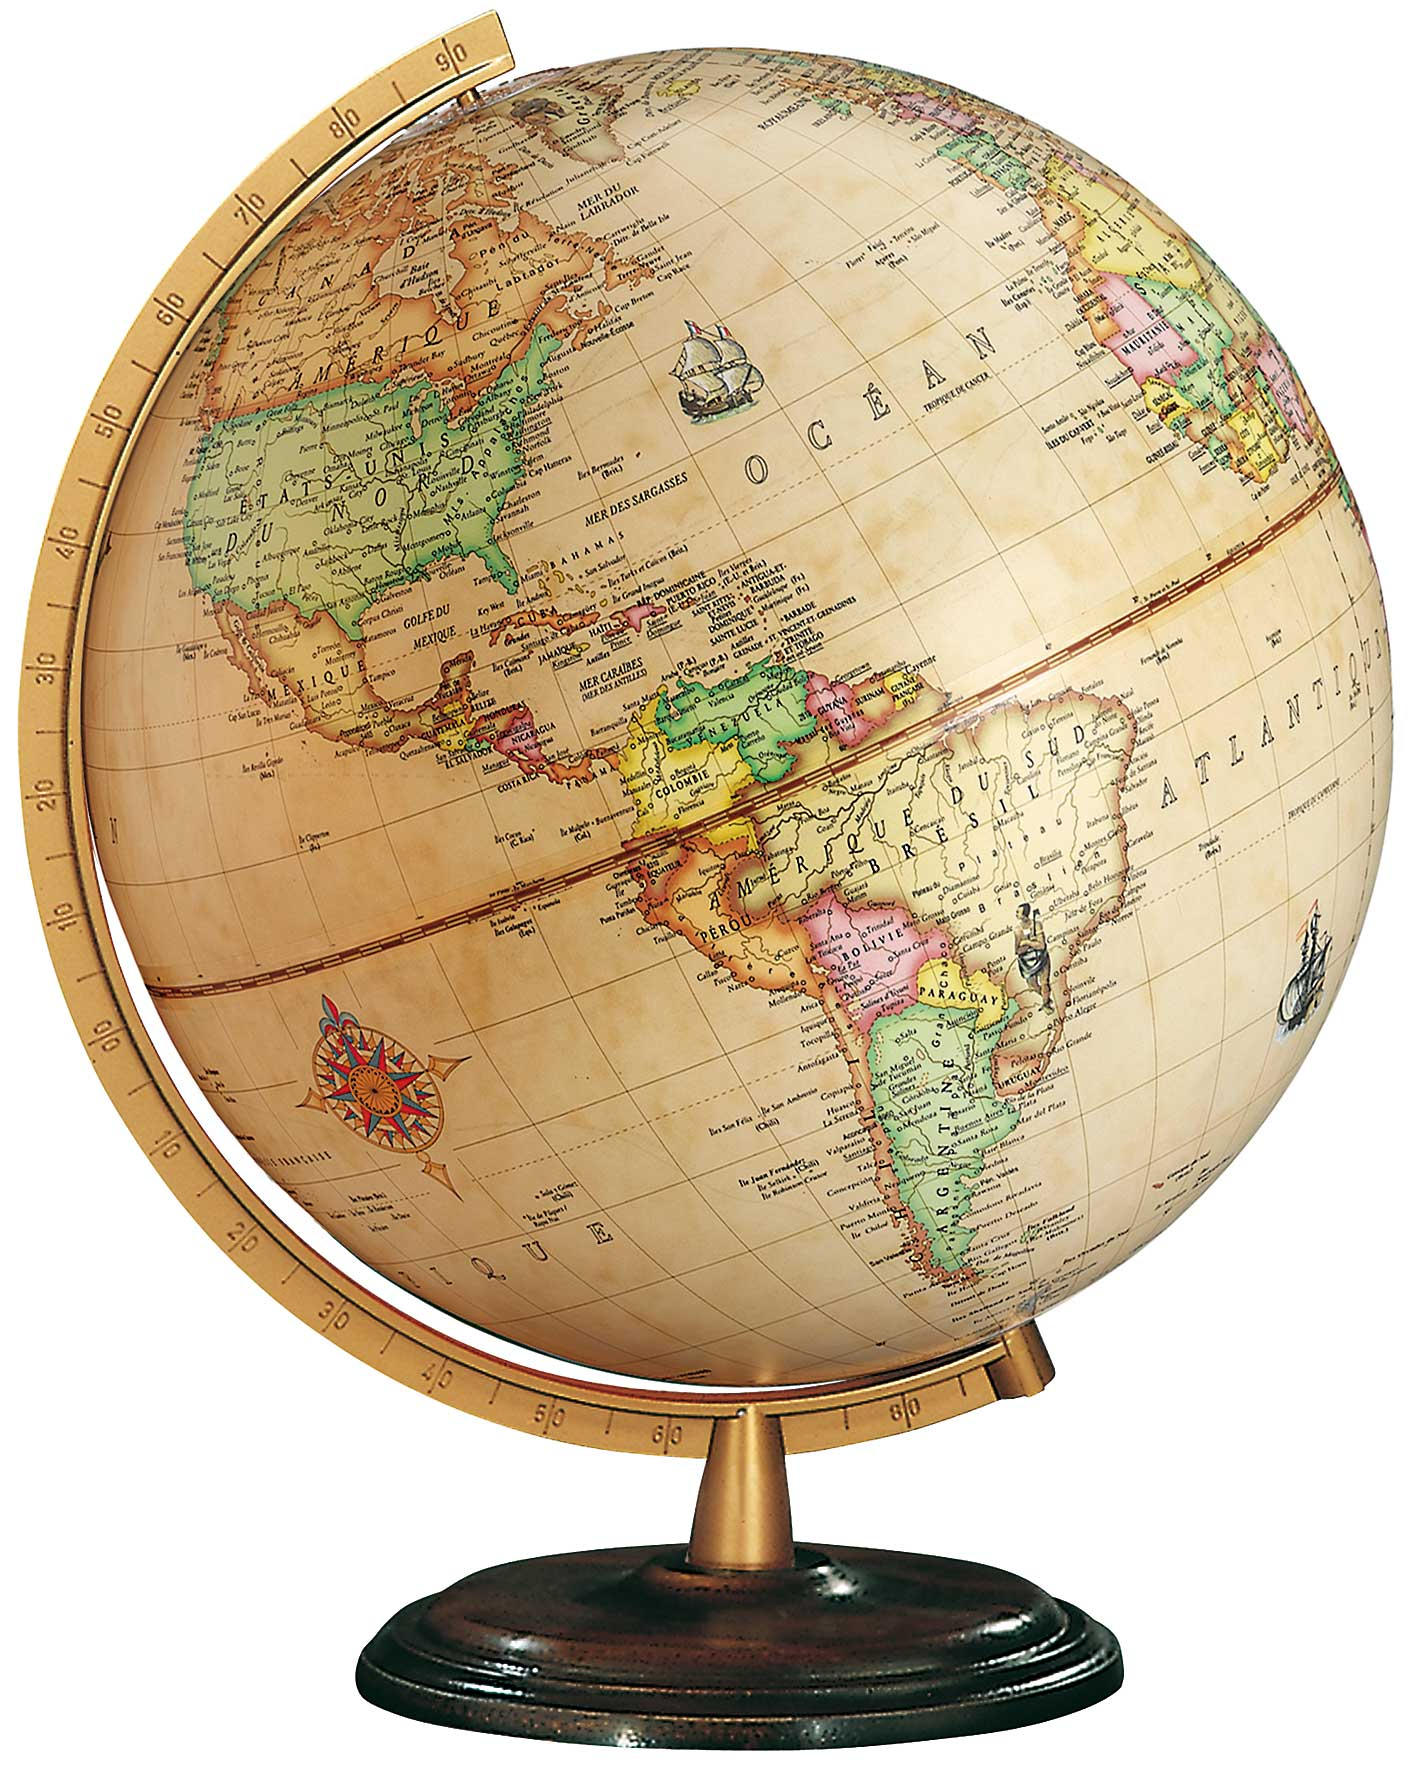 Columbus world globe renaissance our price 8900 gumiabroncs Choice Image